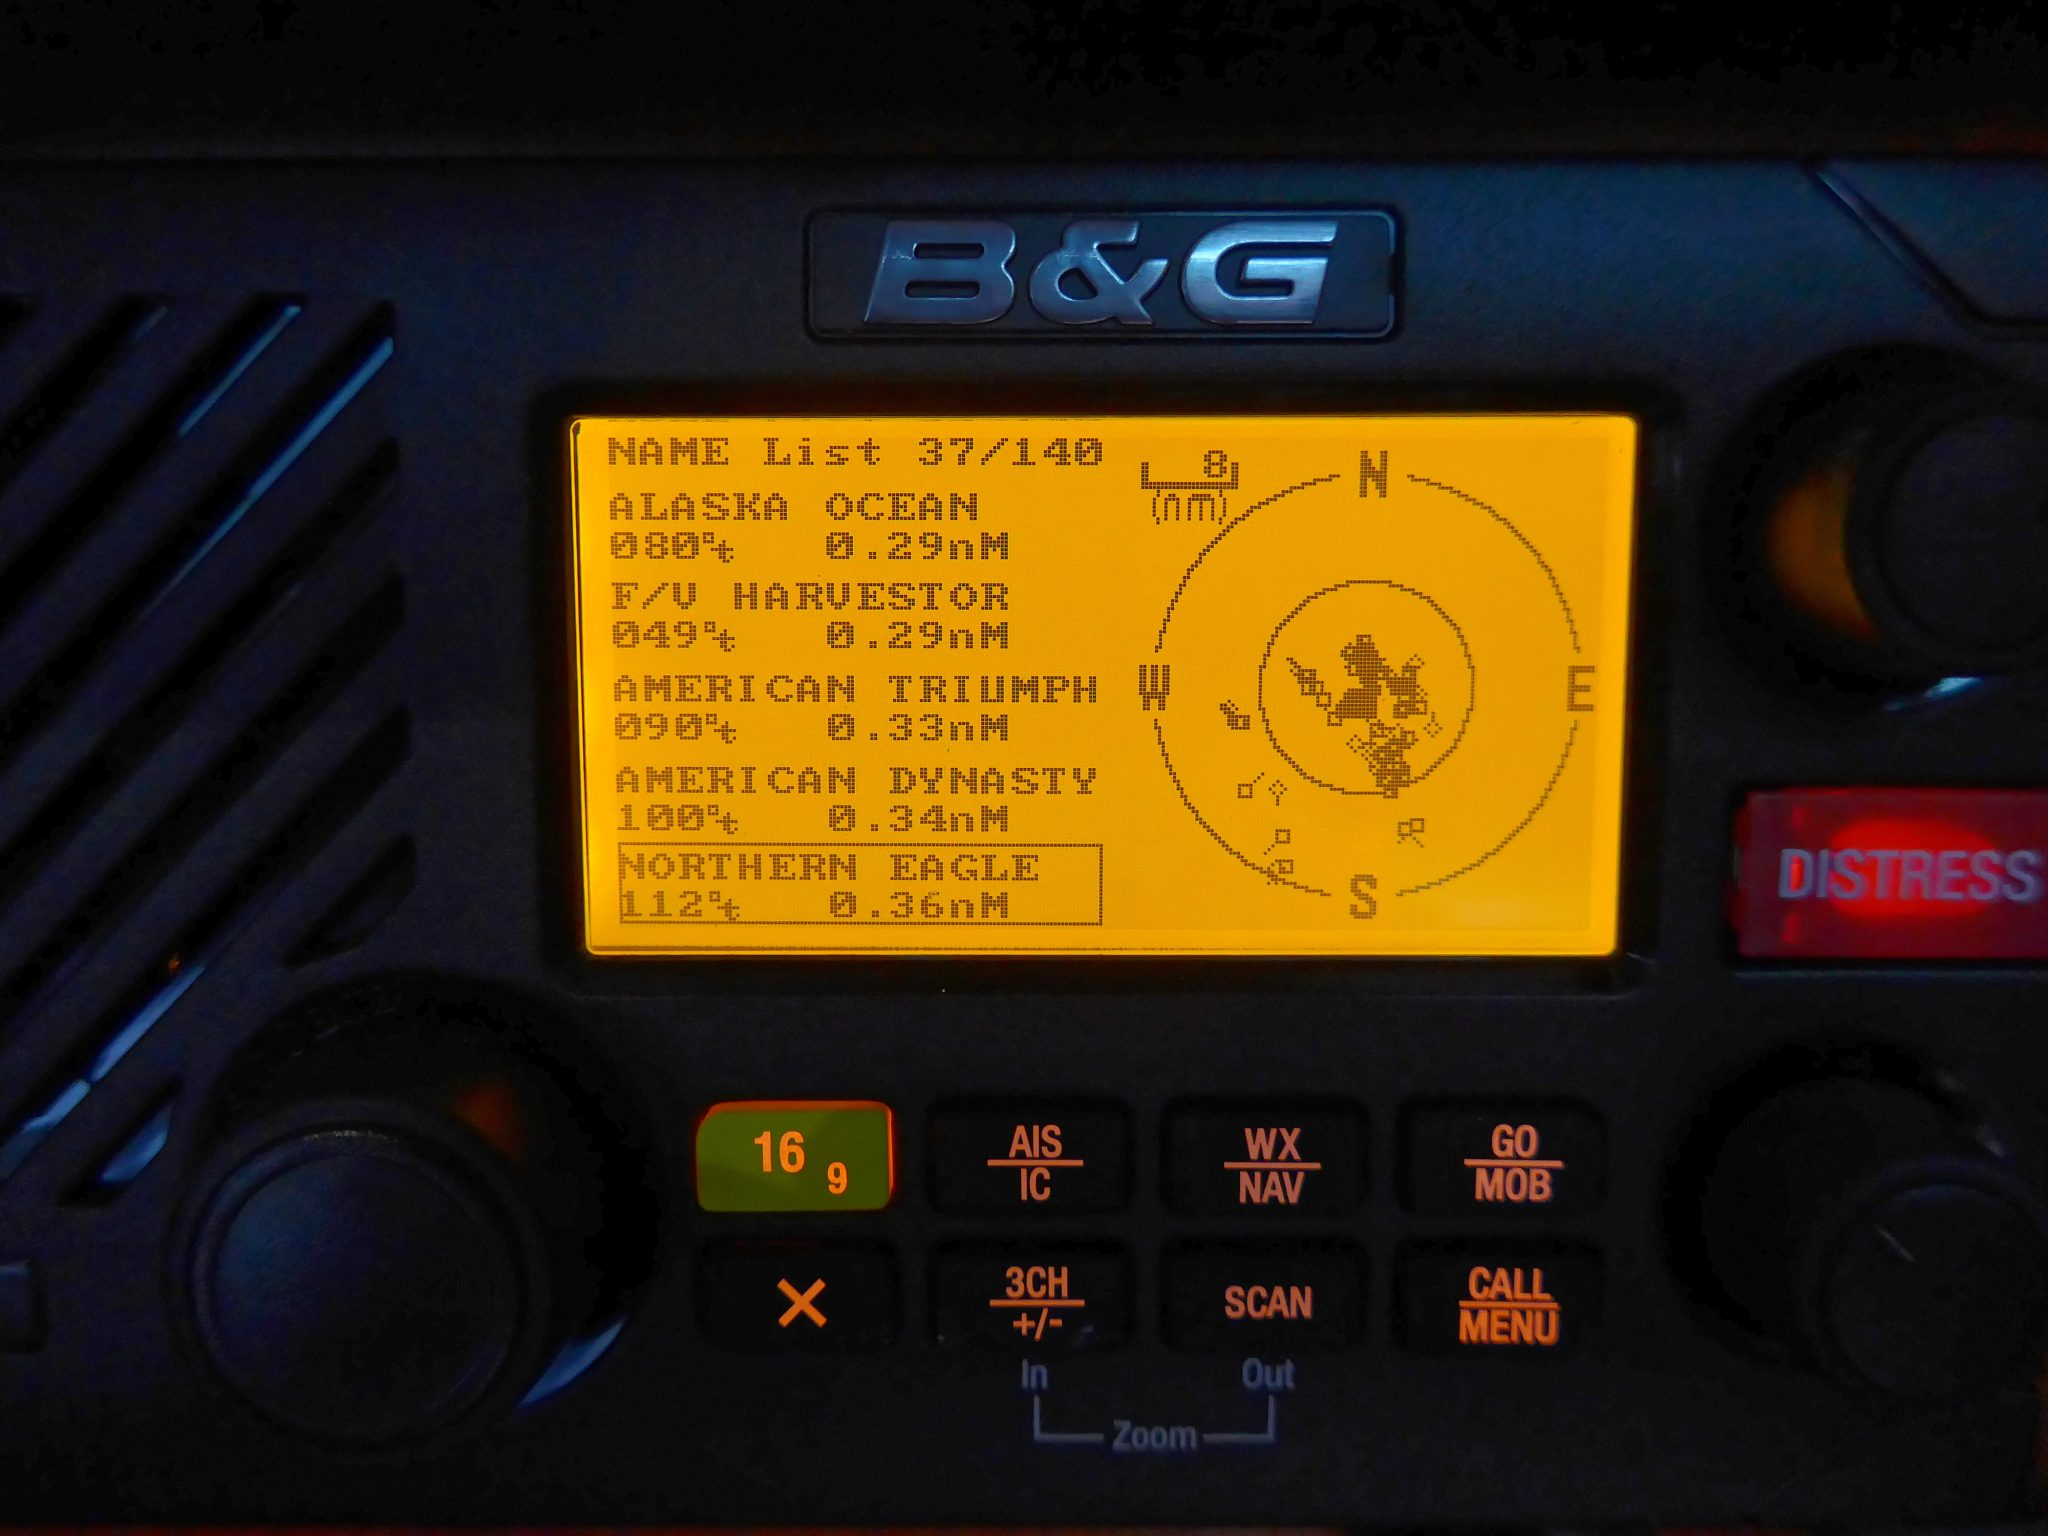 B&G V50 VHF AIS target list and map